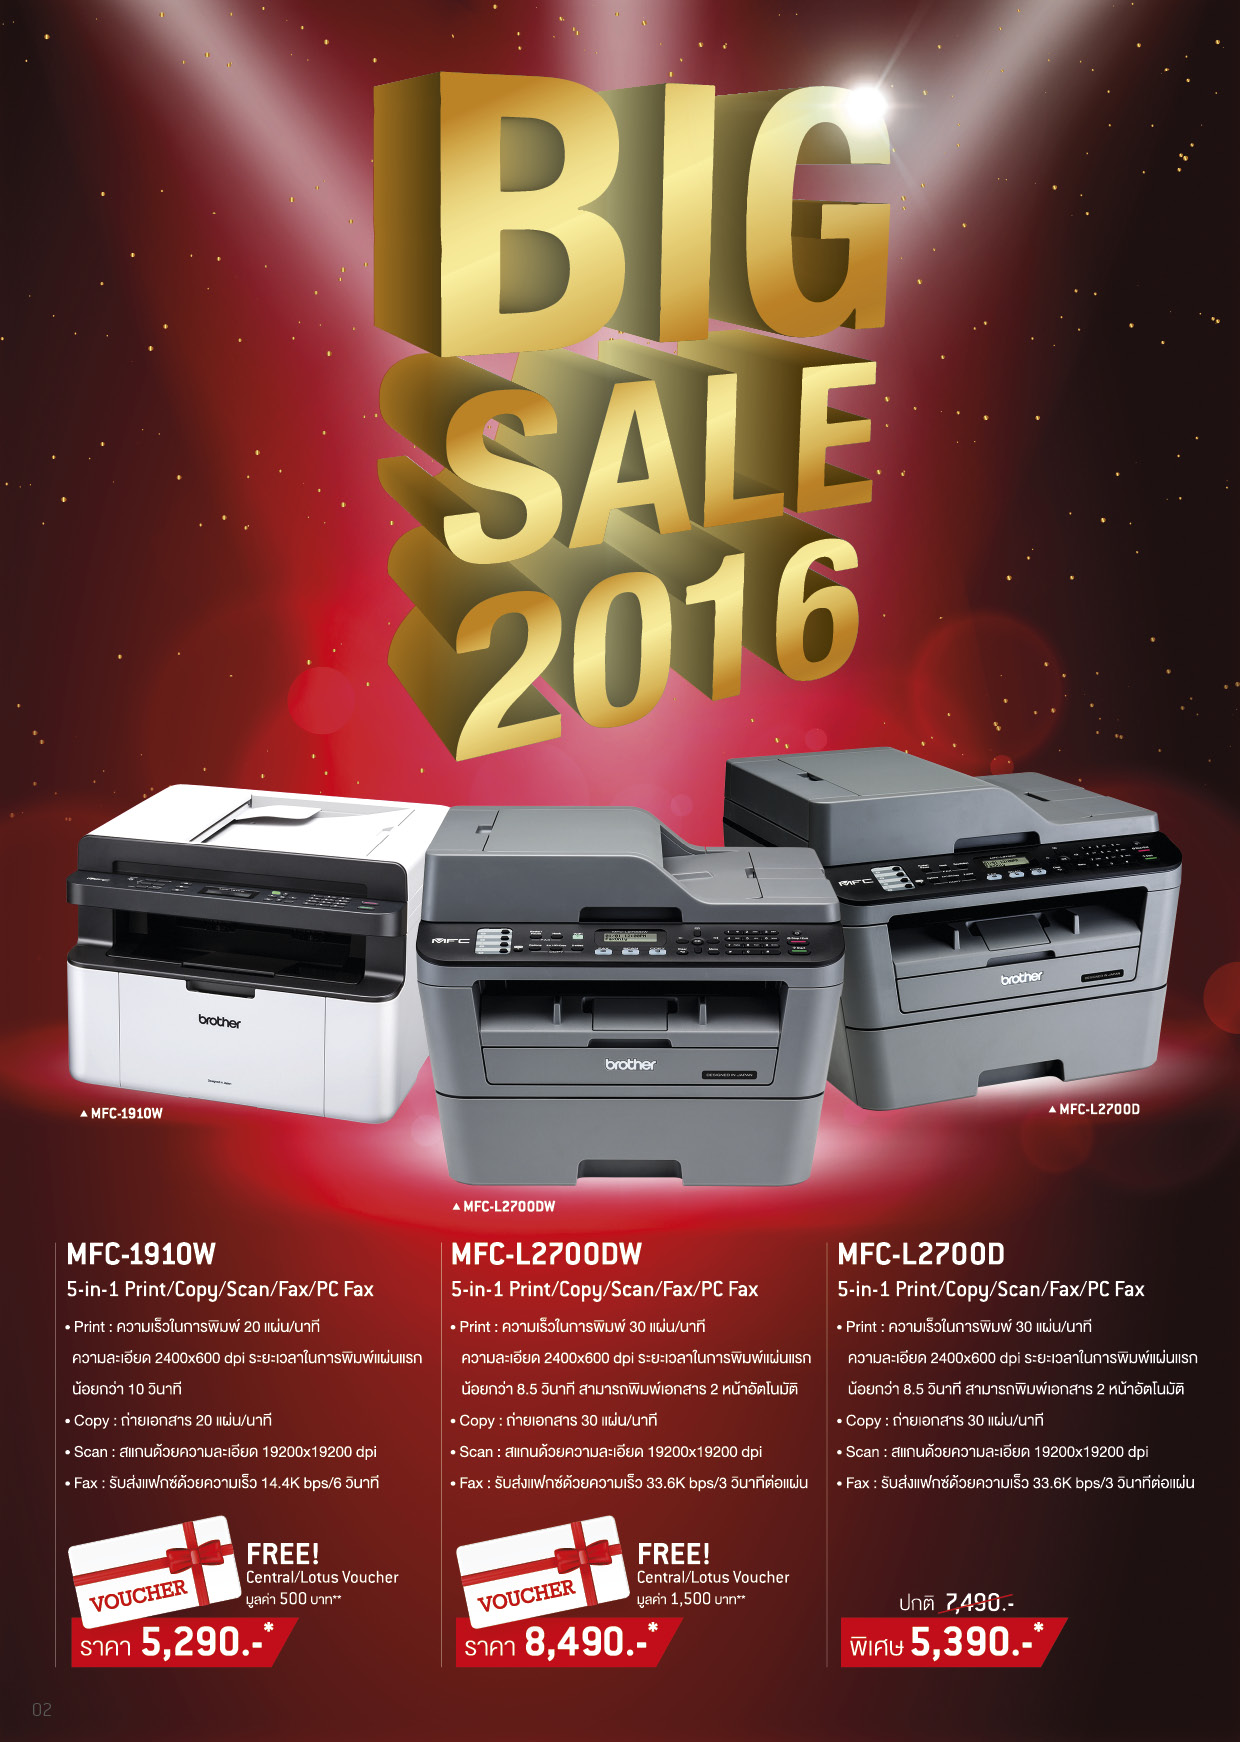 BROTHER BIG SALE 2016